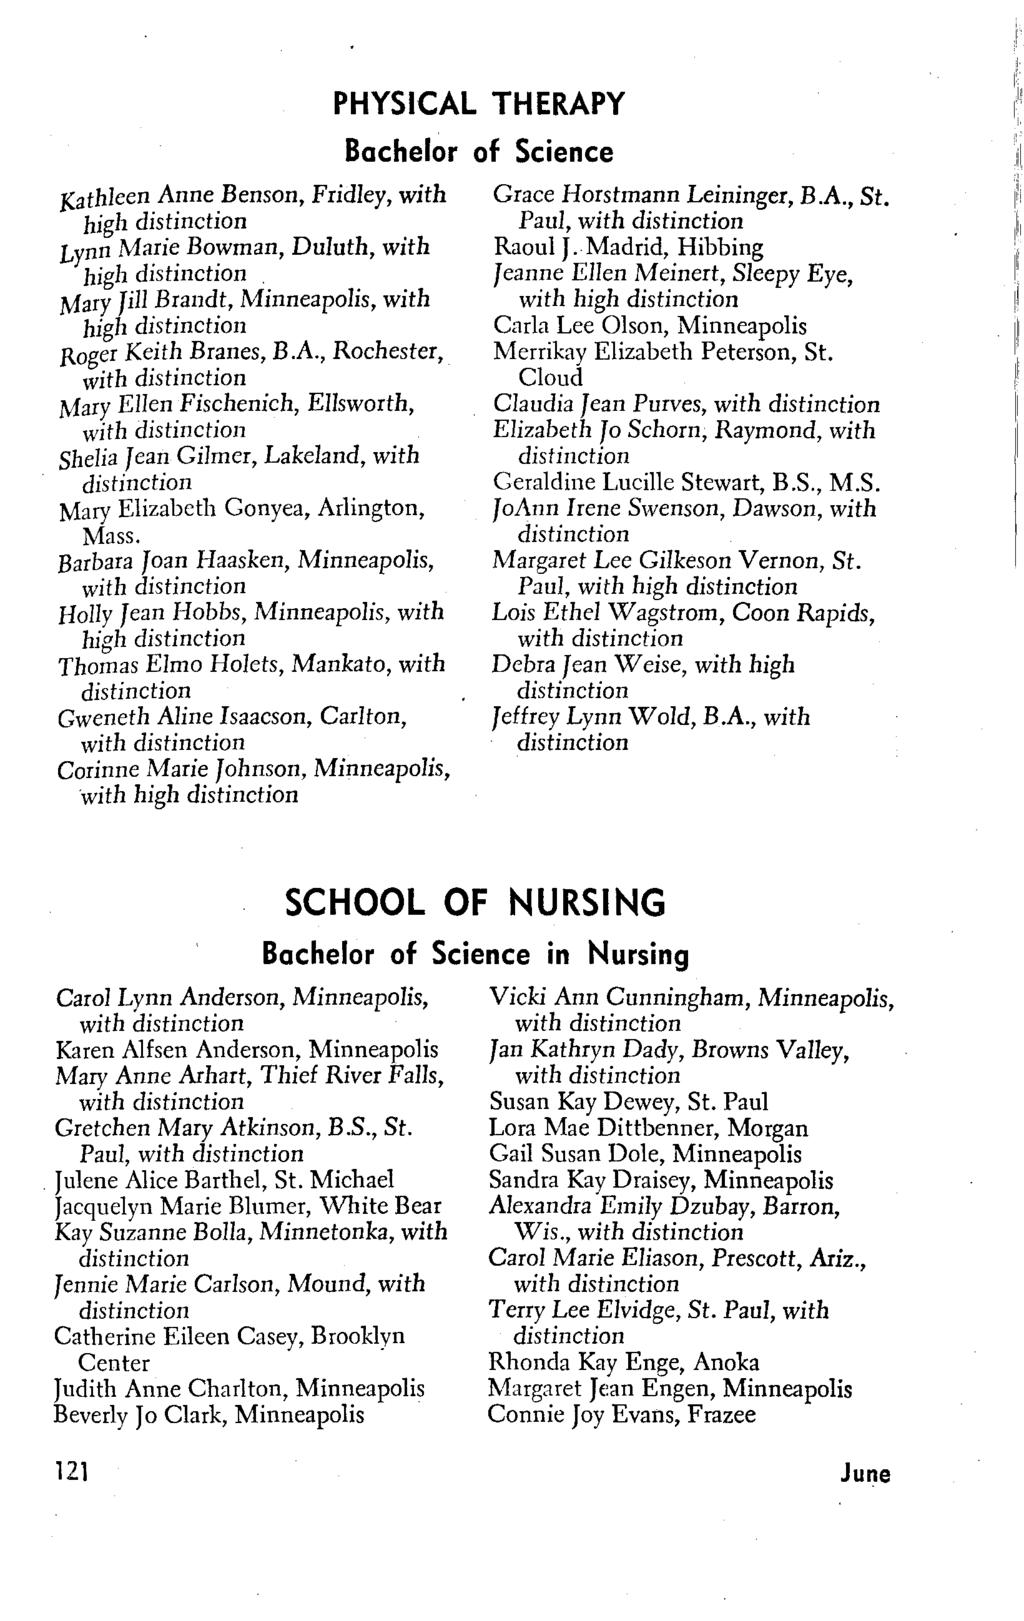 Kathleen Anne Benson, Fridley, with high distinction Lynn Ma.ri~ Bo~man, Duluth, with high dlstmctjon. Mary Jill Brandt,, with high distinction Roger Keith Branes, B.A., Rochester, Mary Ellen Fischenich, Ellsworth, Shelia Jean Gilmer, Lakeland, with distinction Mary Elizabeth Gonyea, Arlington, Mass.